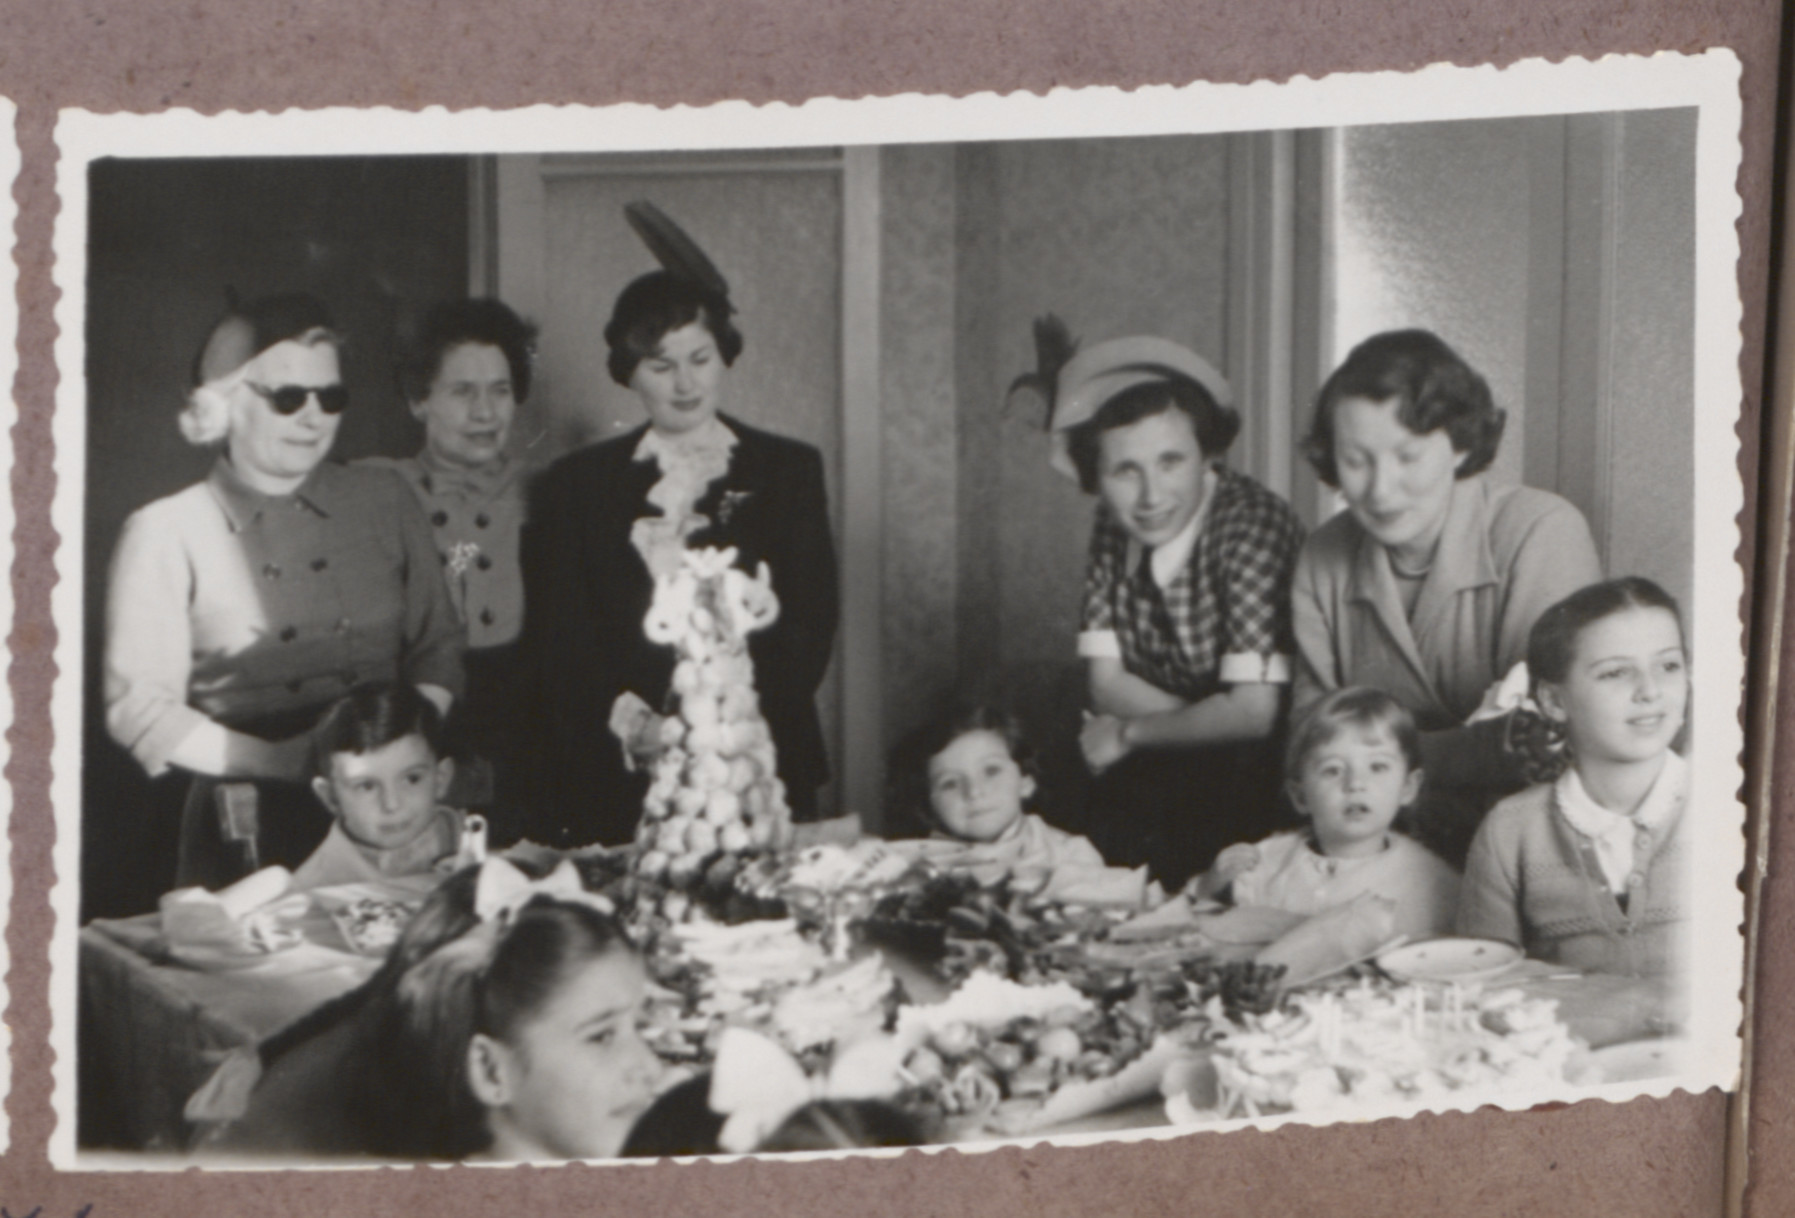 Photo album page showing Daisy Breuer's 7th birthday party with many Hungarian Jewish survivor children in attendance.